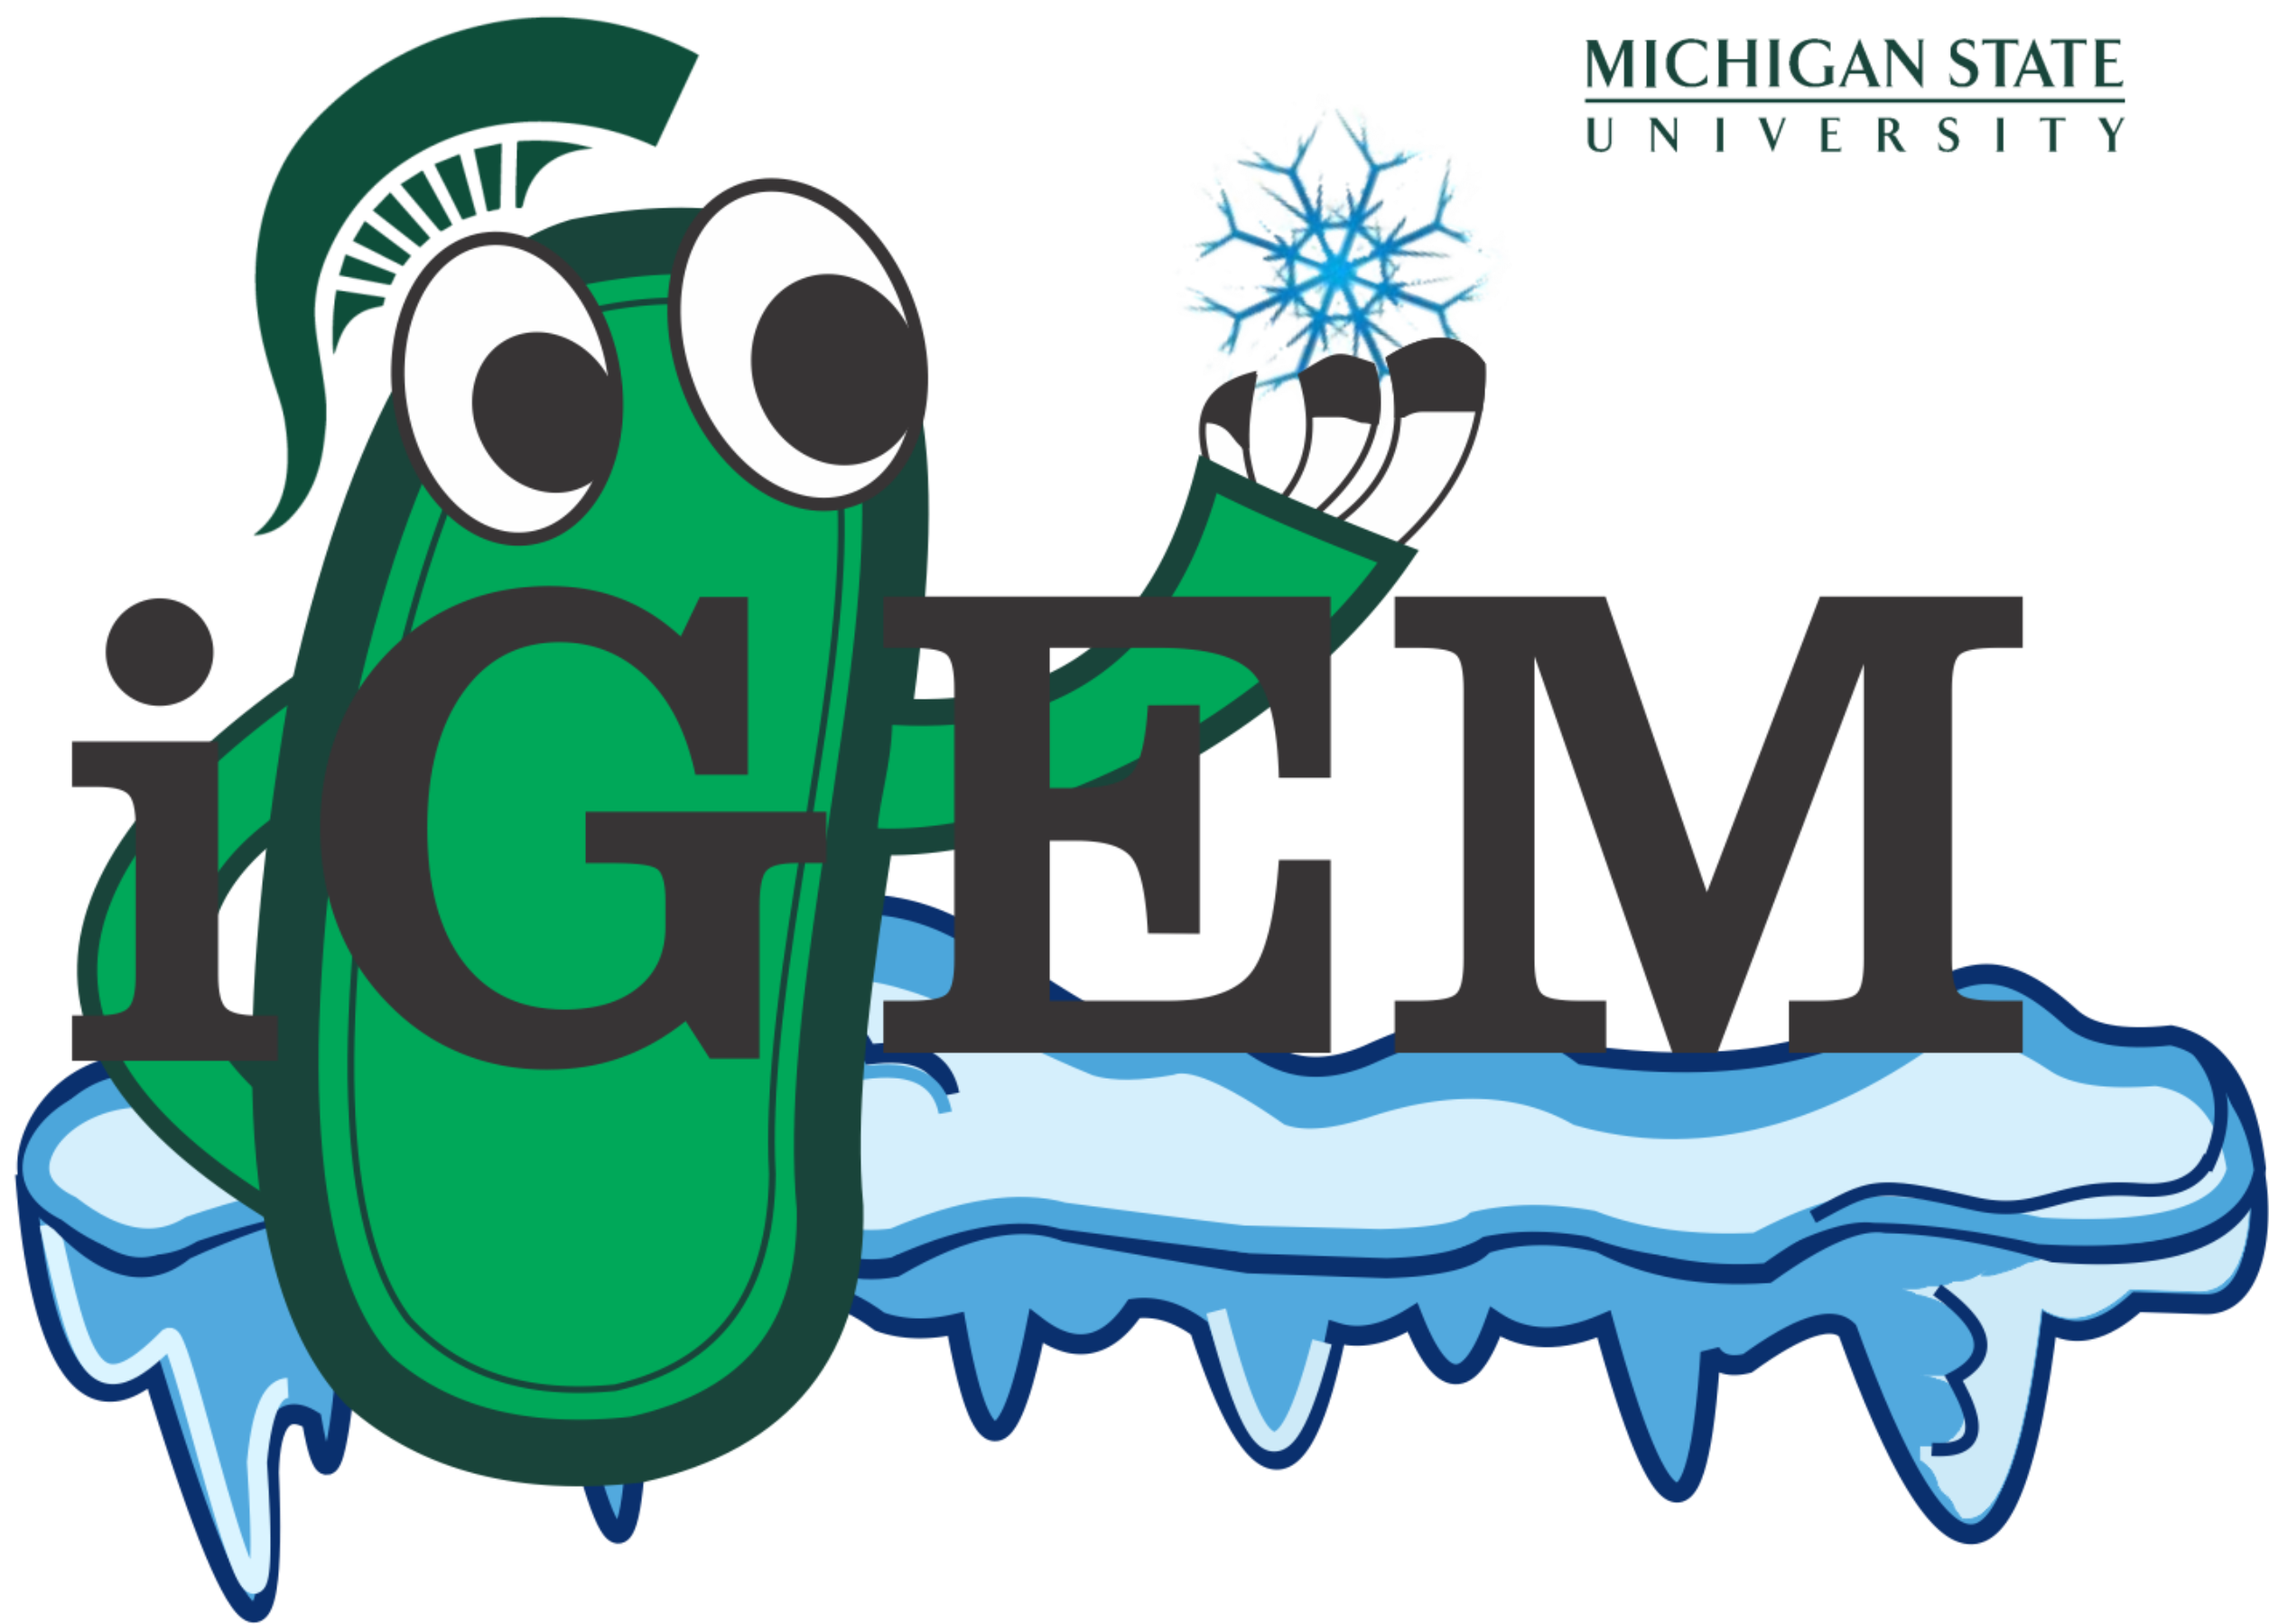 Team msu igem org. Spartan clipart michigan state